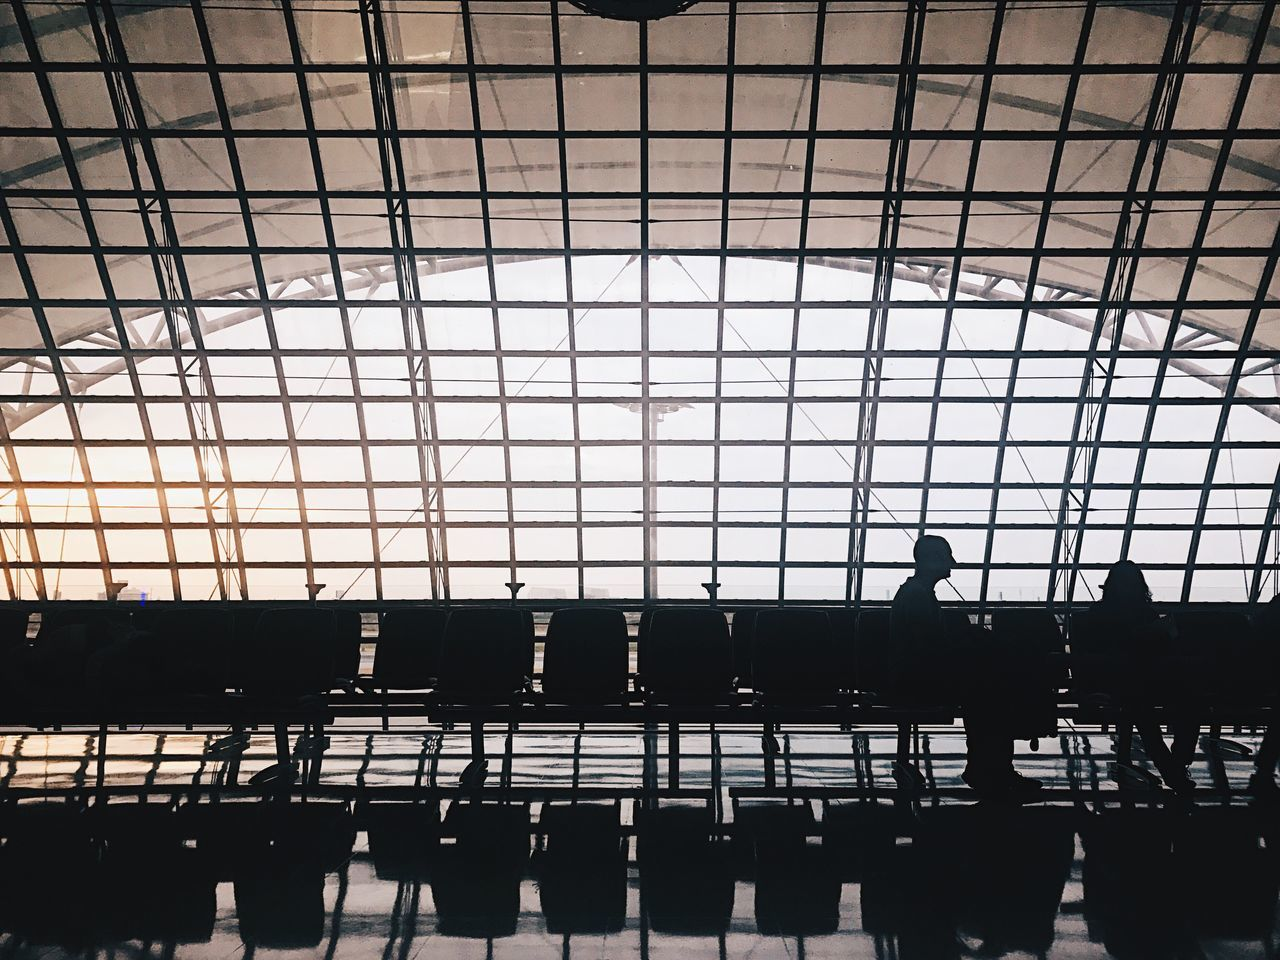 Travel Traveling Architecture Airplane Symmetry Silhouette